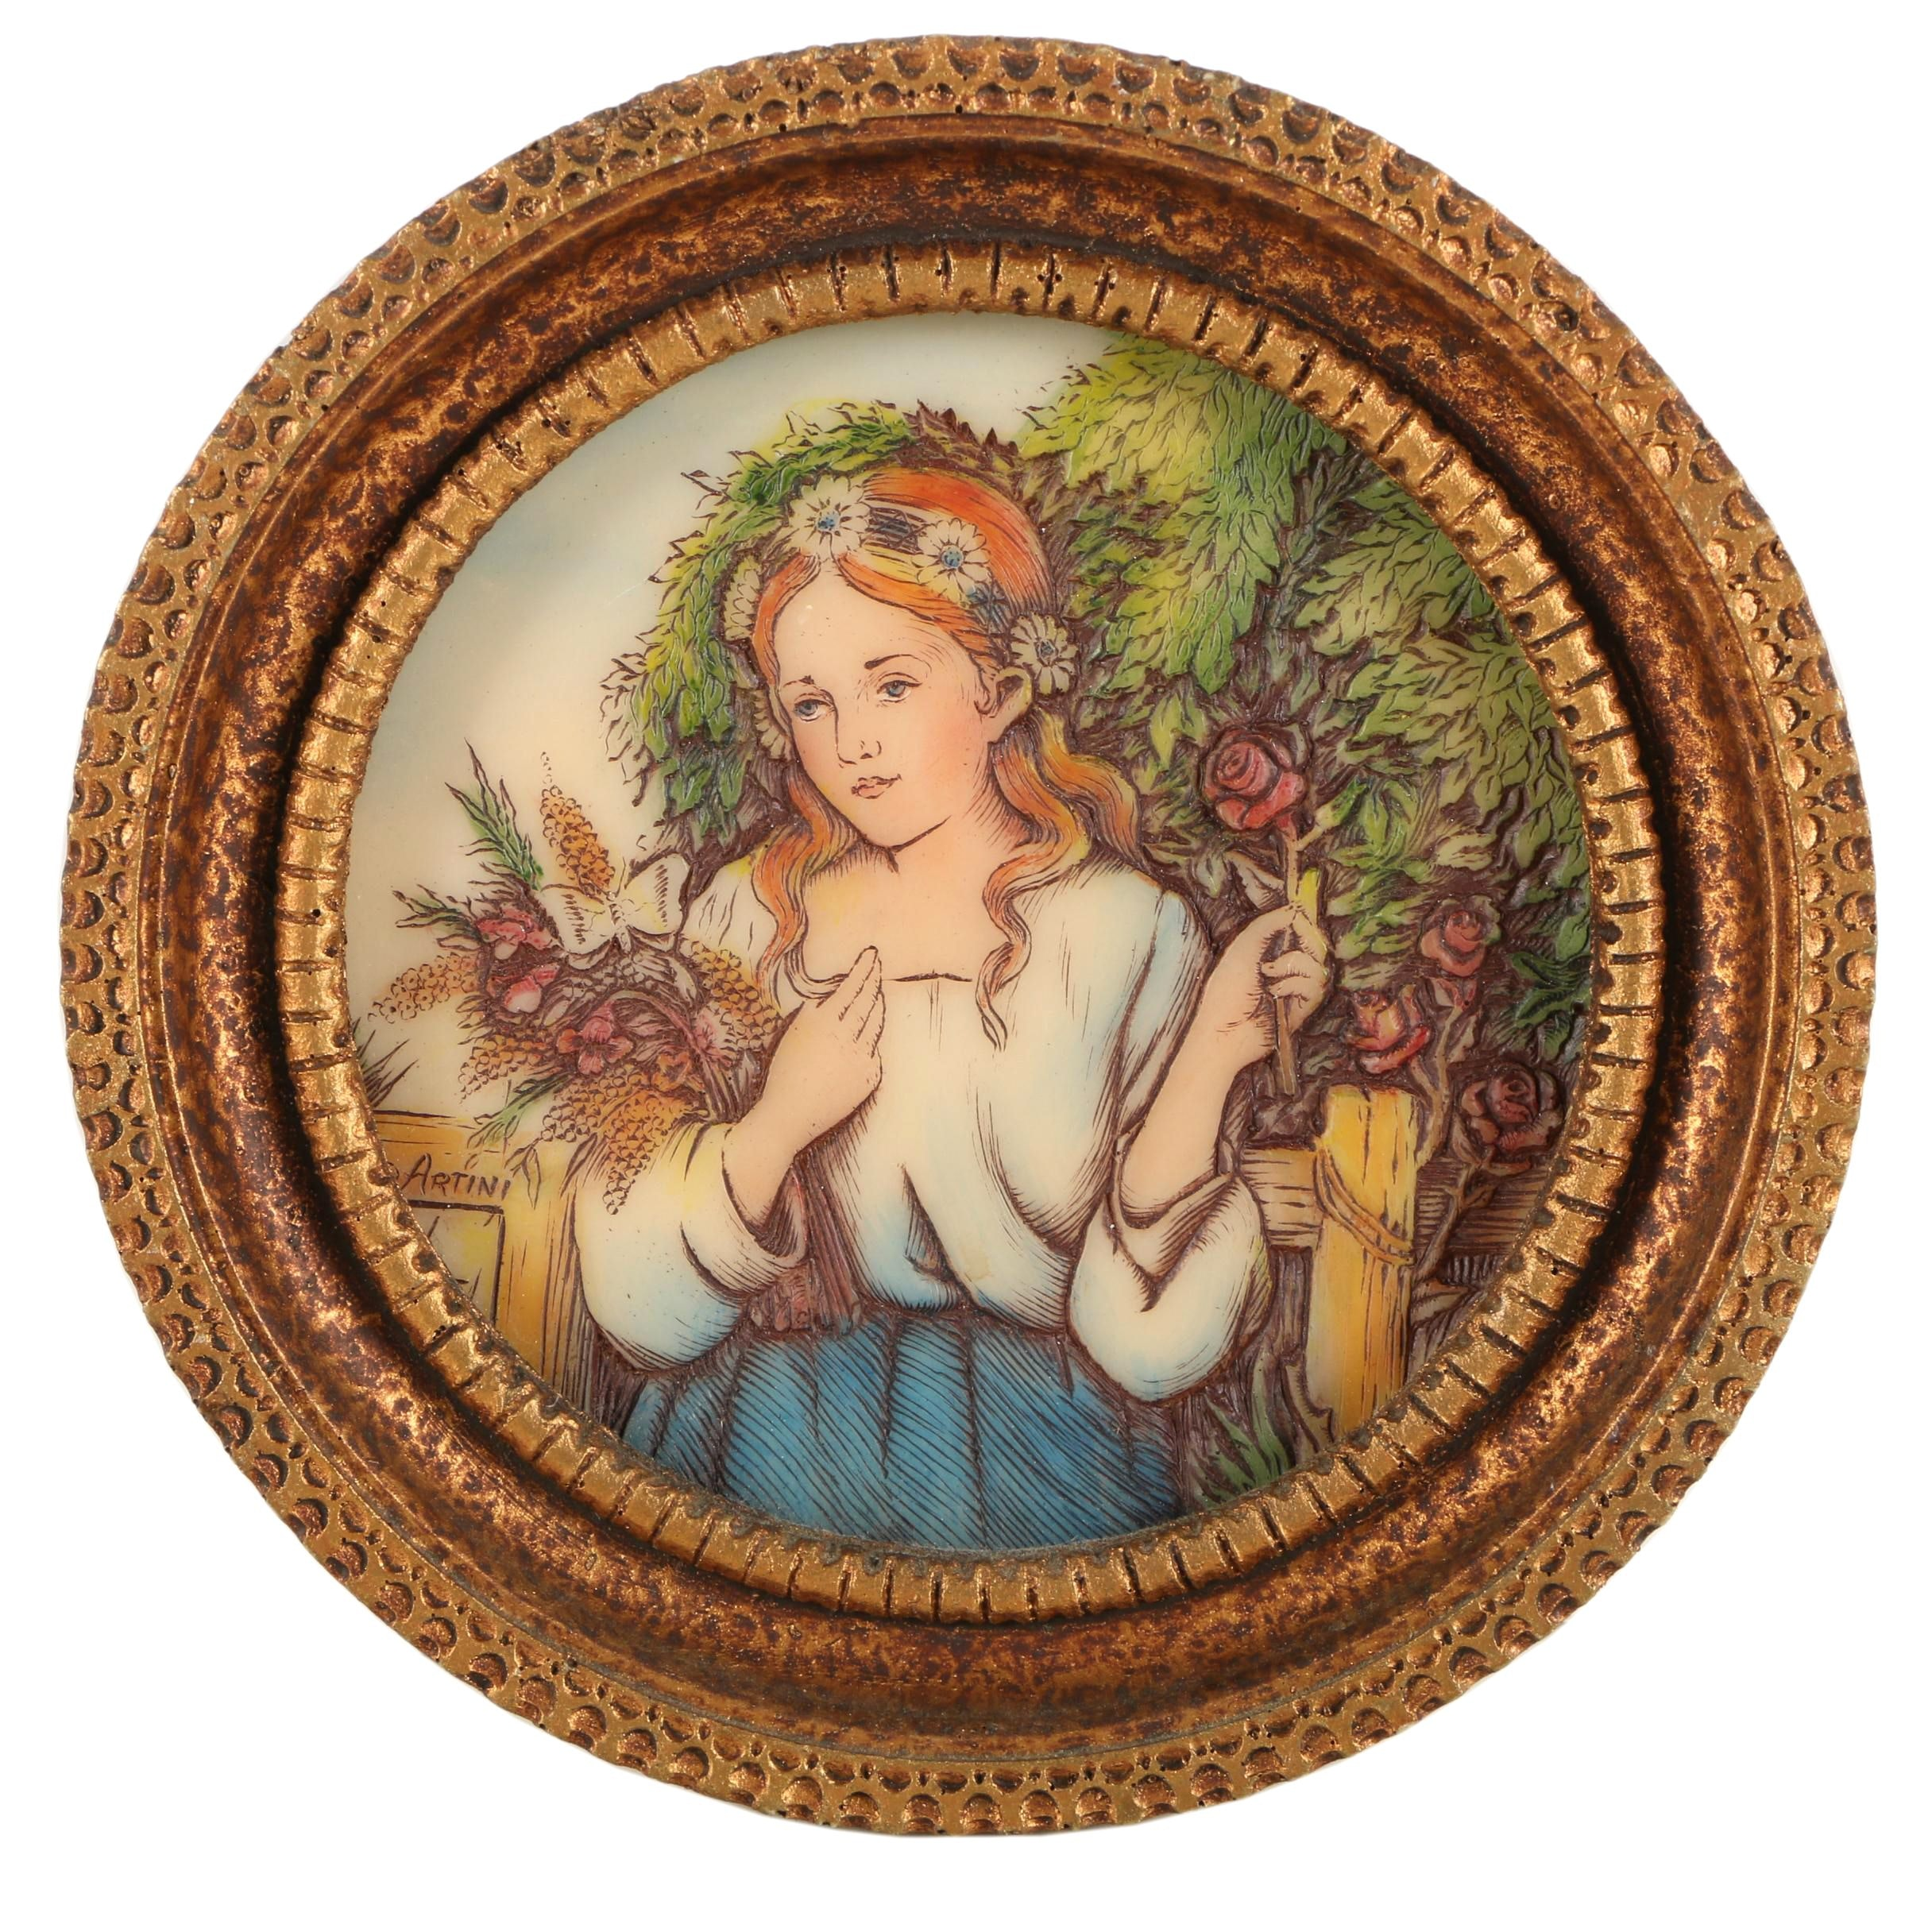 Artini Arts Hand-Painted Resin Engraving of a Portrait of Girl with Flowers